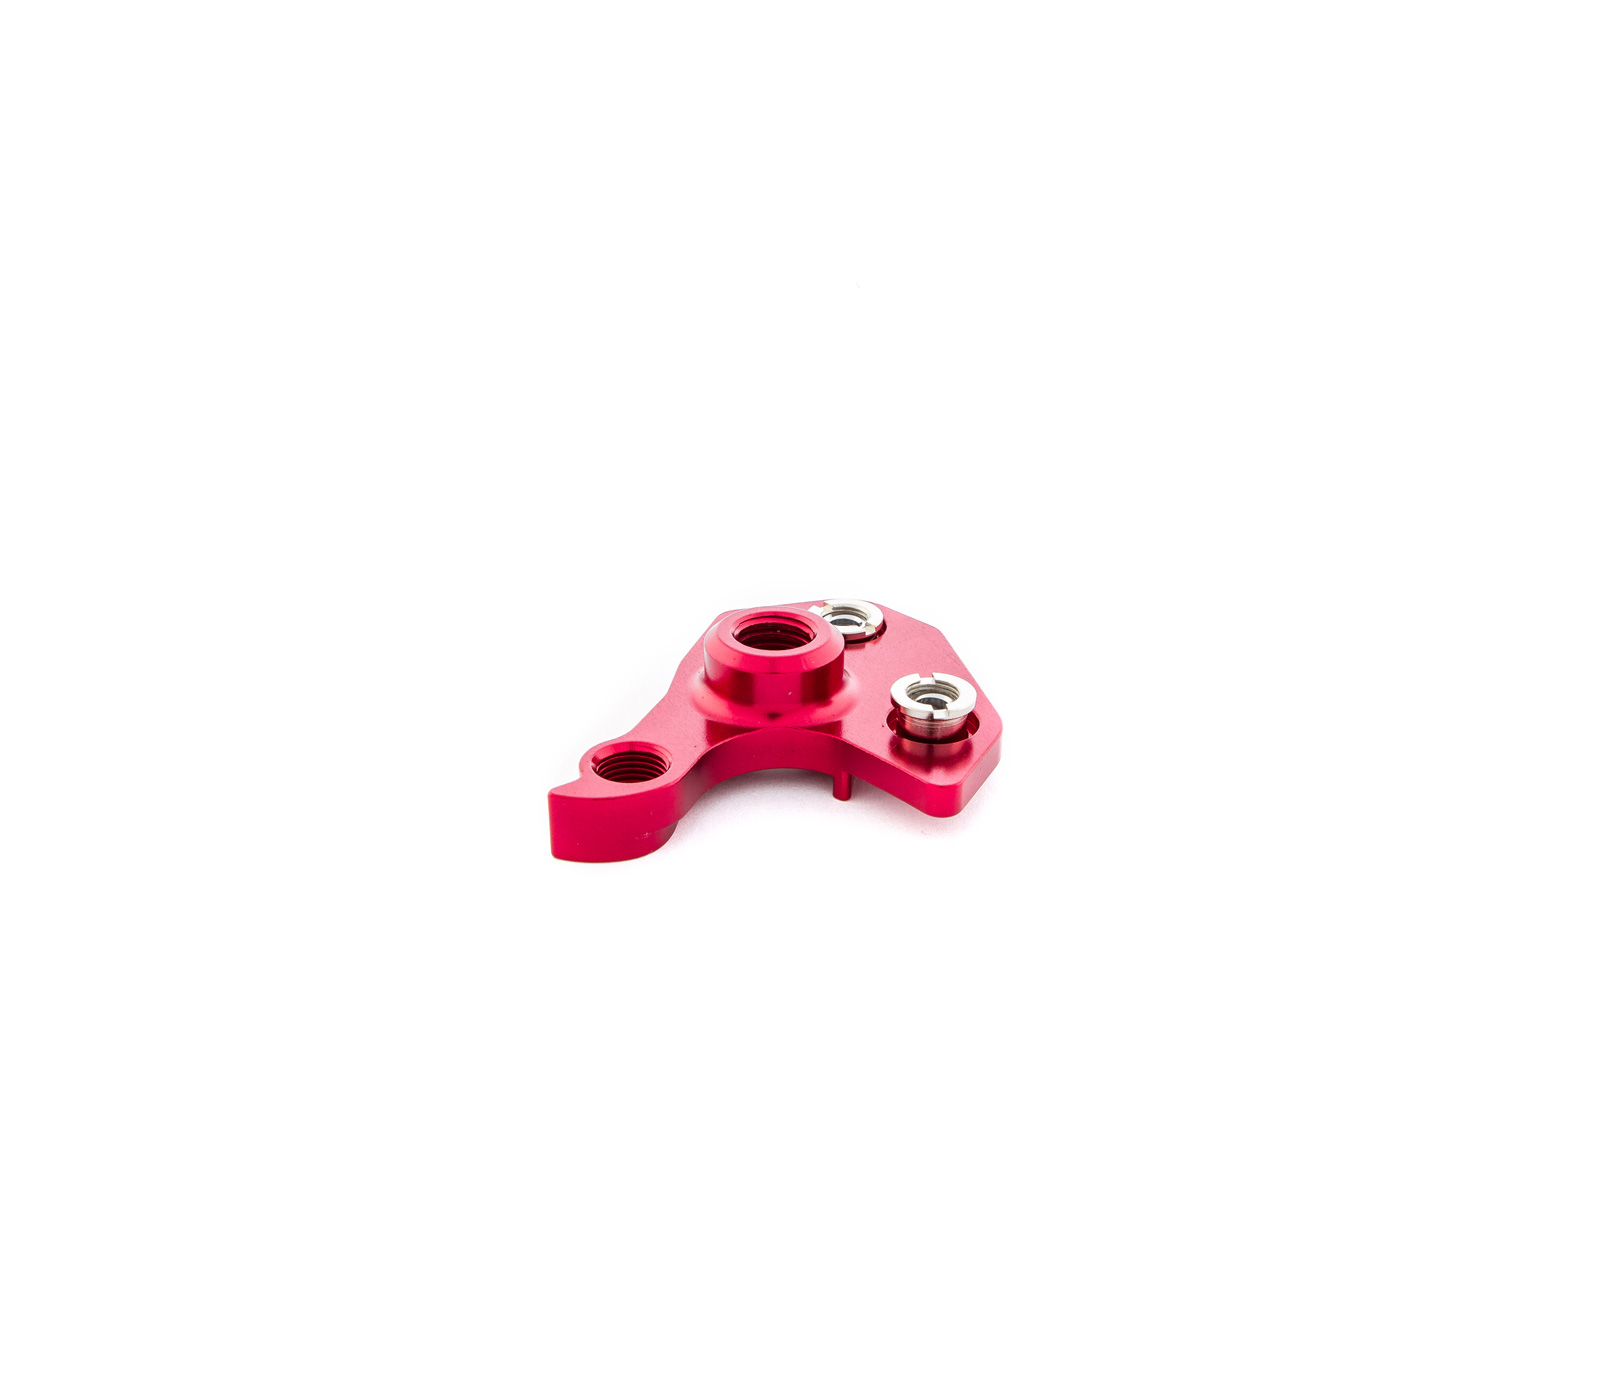 RED RIGHT DERAILLEUR HANGER FOR 142MM AXLE FOR RALLON MODELS